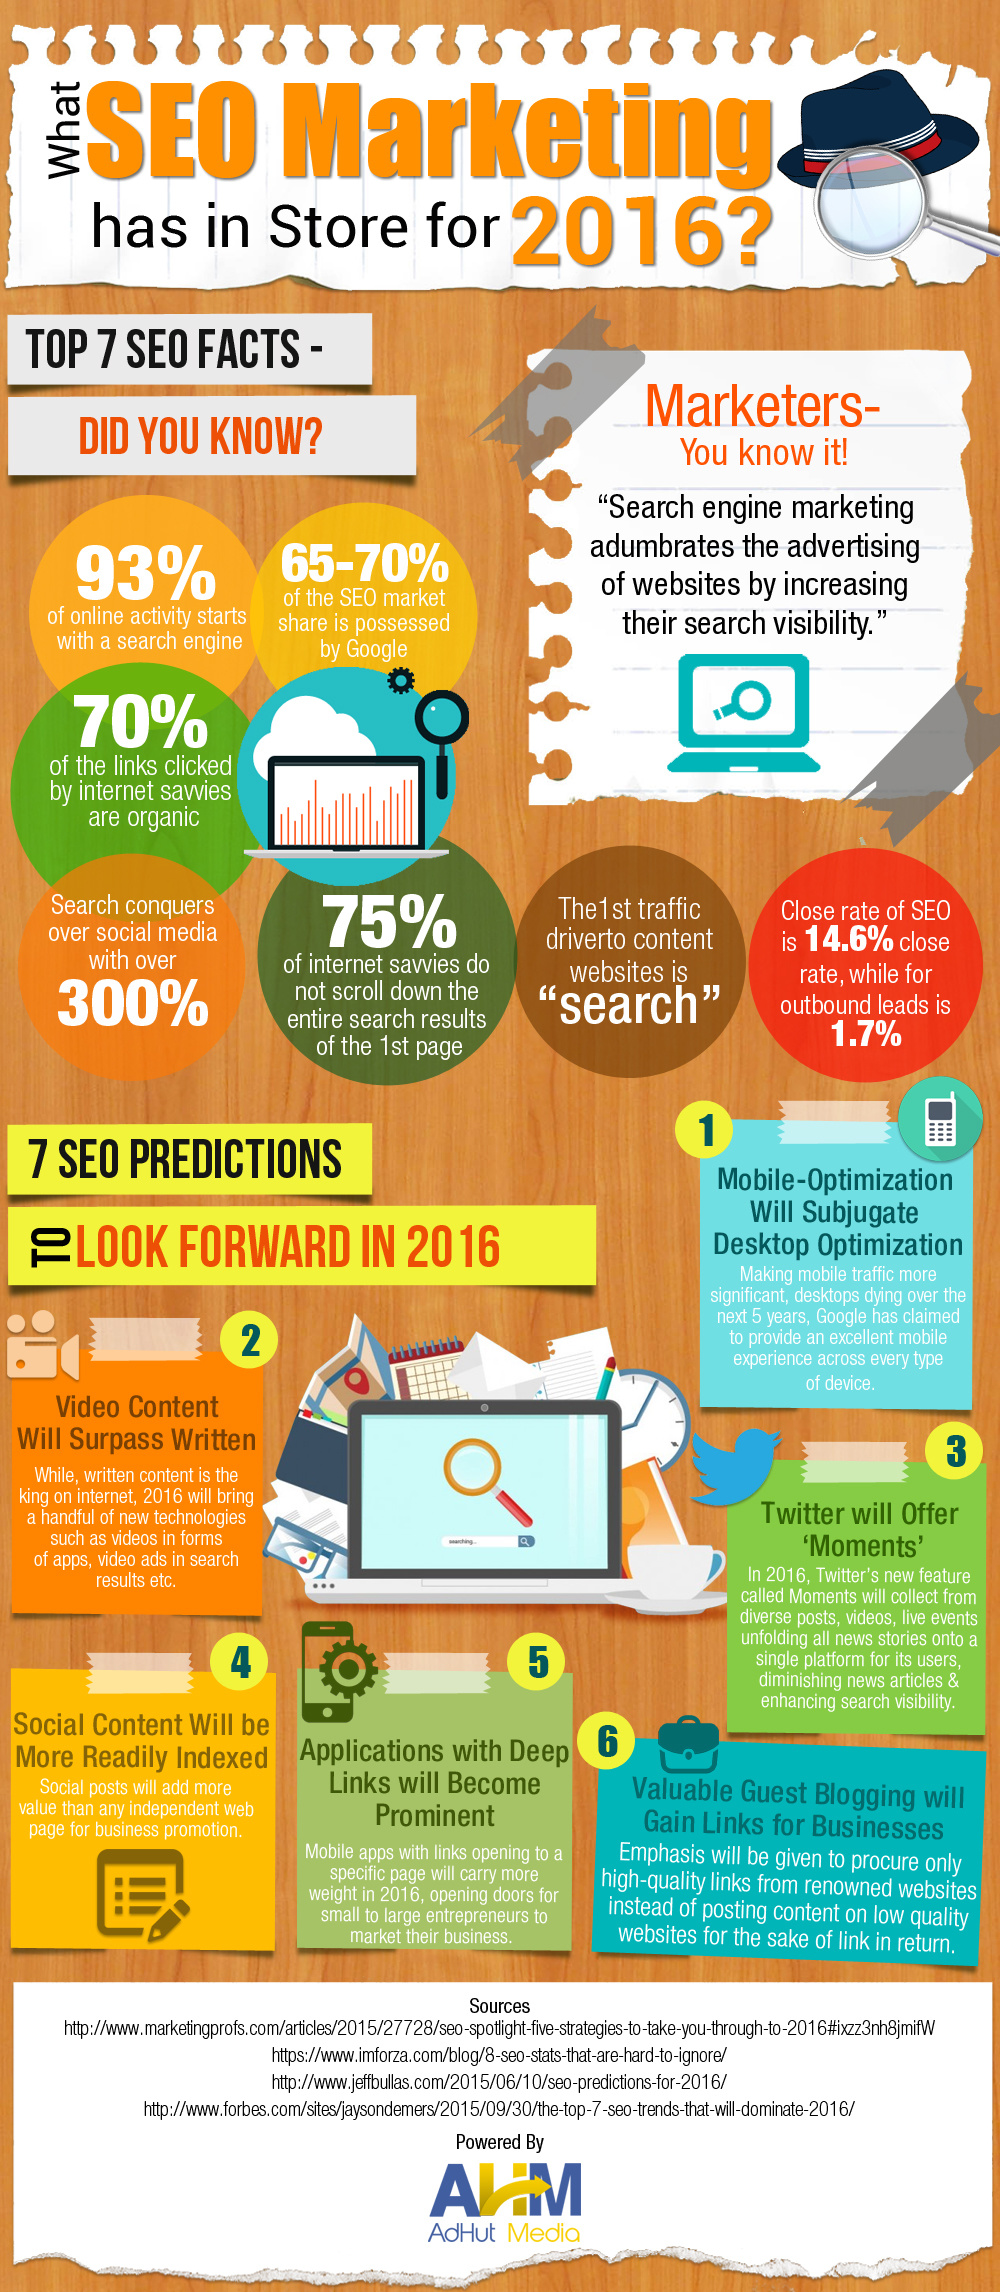 What SEO Marketing Has in Store for 2016? - Image 1